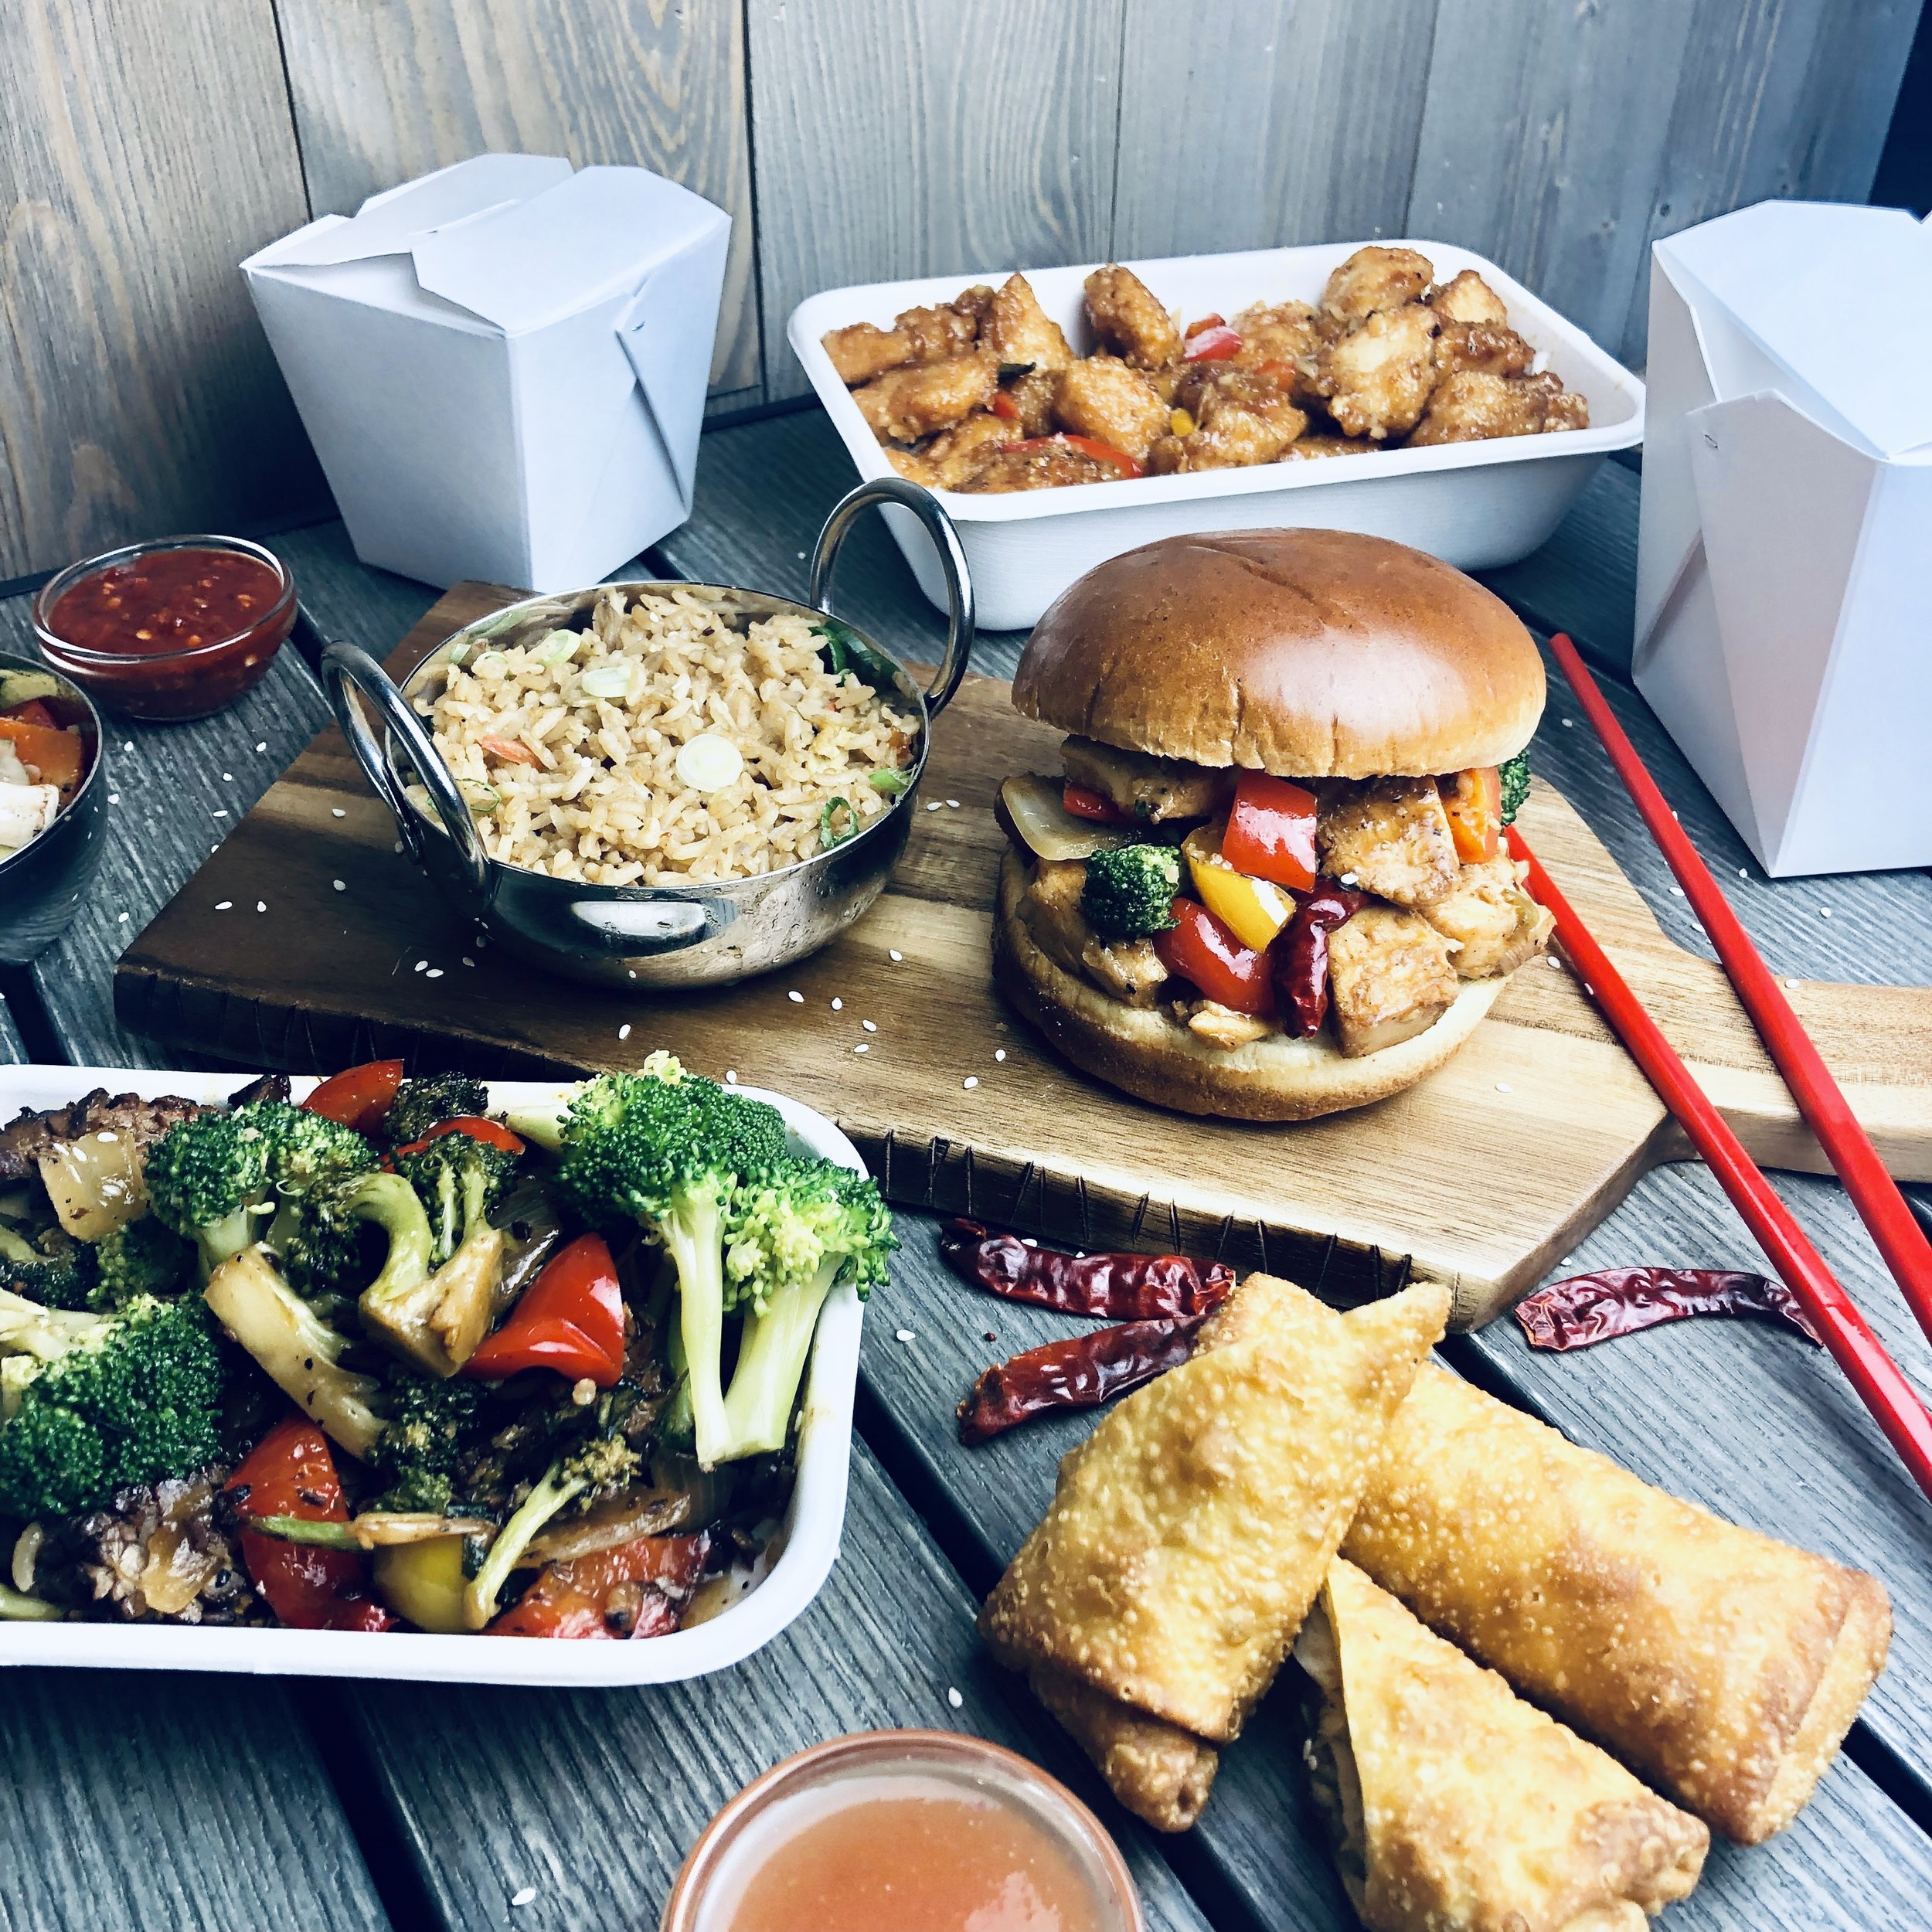 Butcher & the Wok (Food items pictured from top to bottom: Honey Garlic Chicken, Garlic Fried Rice, Beijing Chicken Sandwich, Basil Beef and Short Rib Egg rolls)